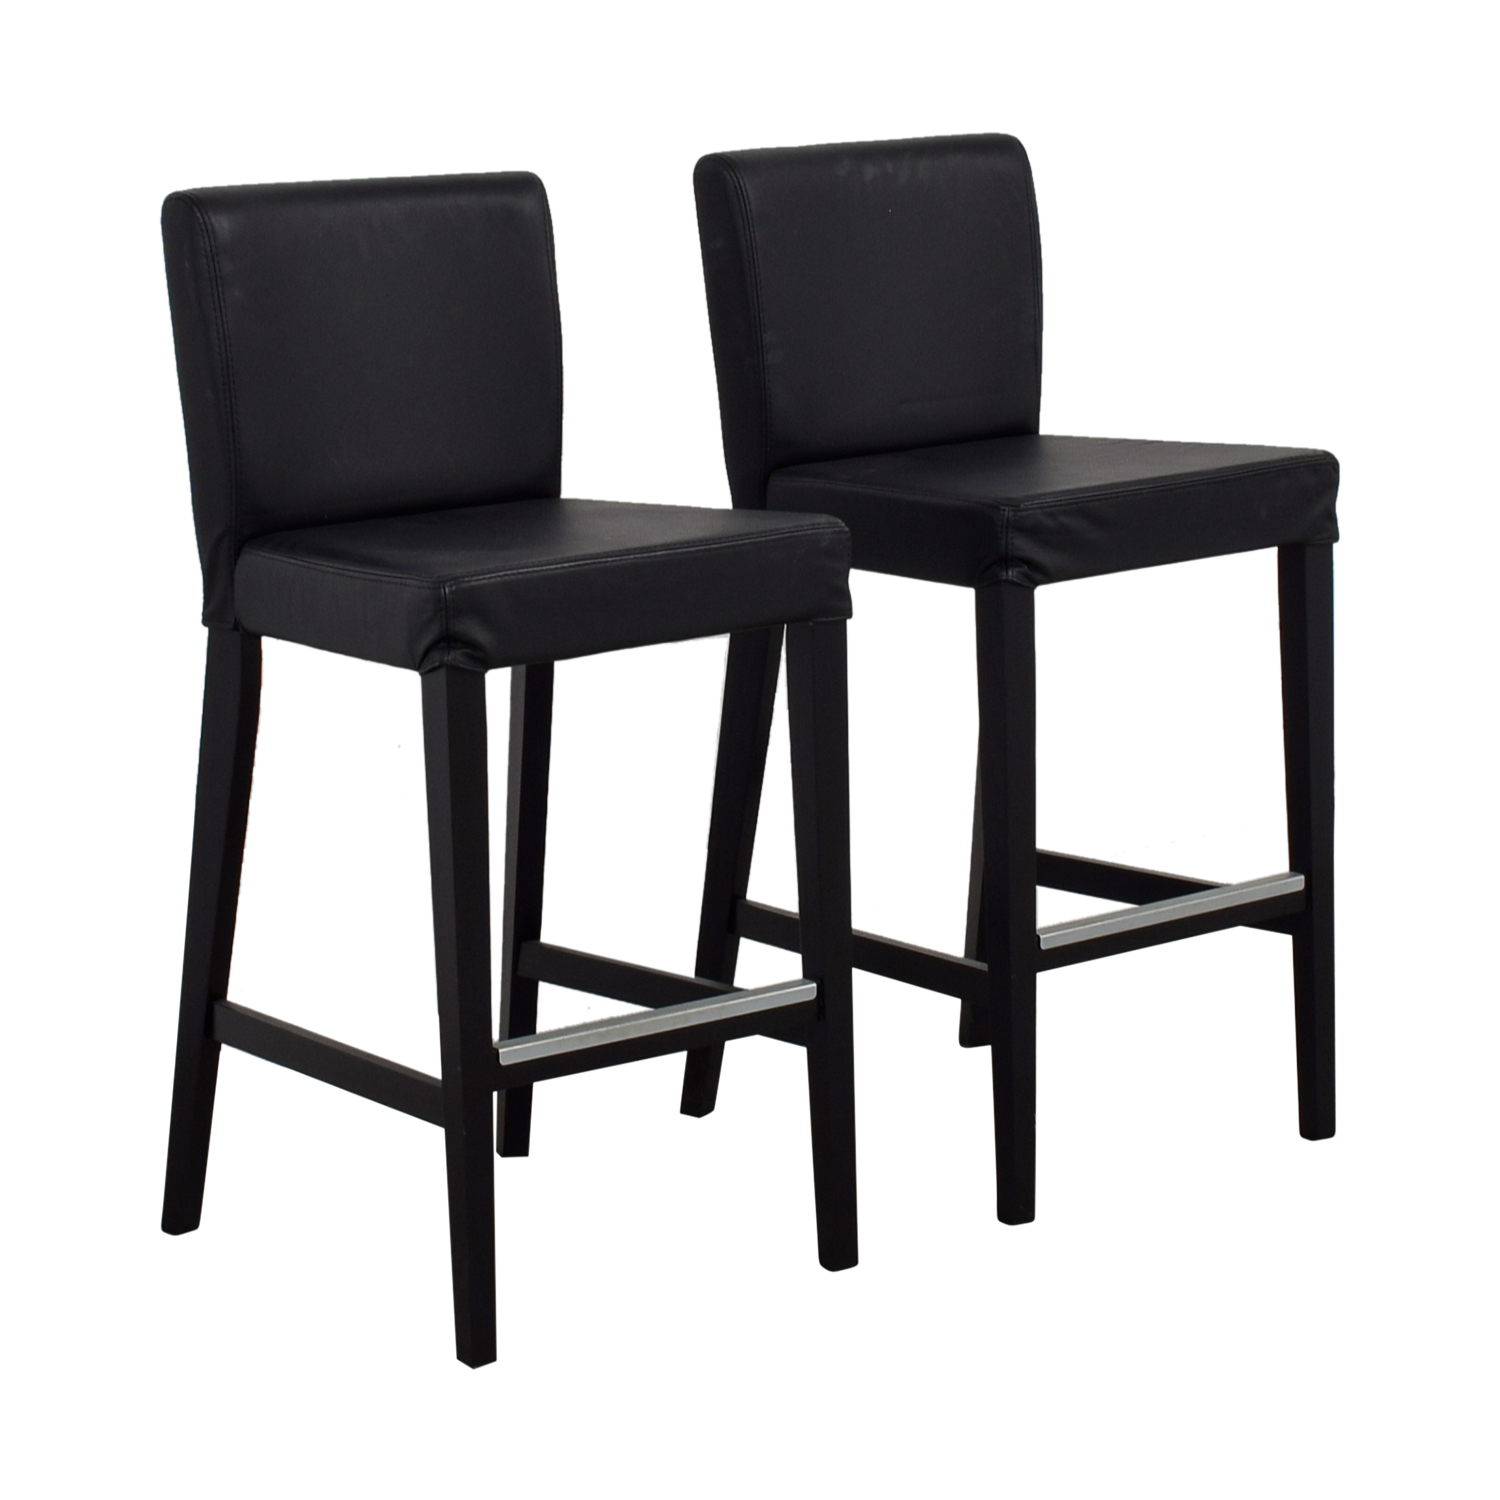 Fine 68 Off Ikea Ikea Black Tall Bar Counter Stools Chairs Ncnpc Chair Design For Home Ncnpcorg